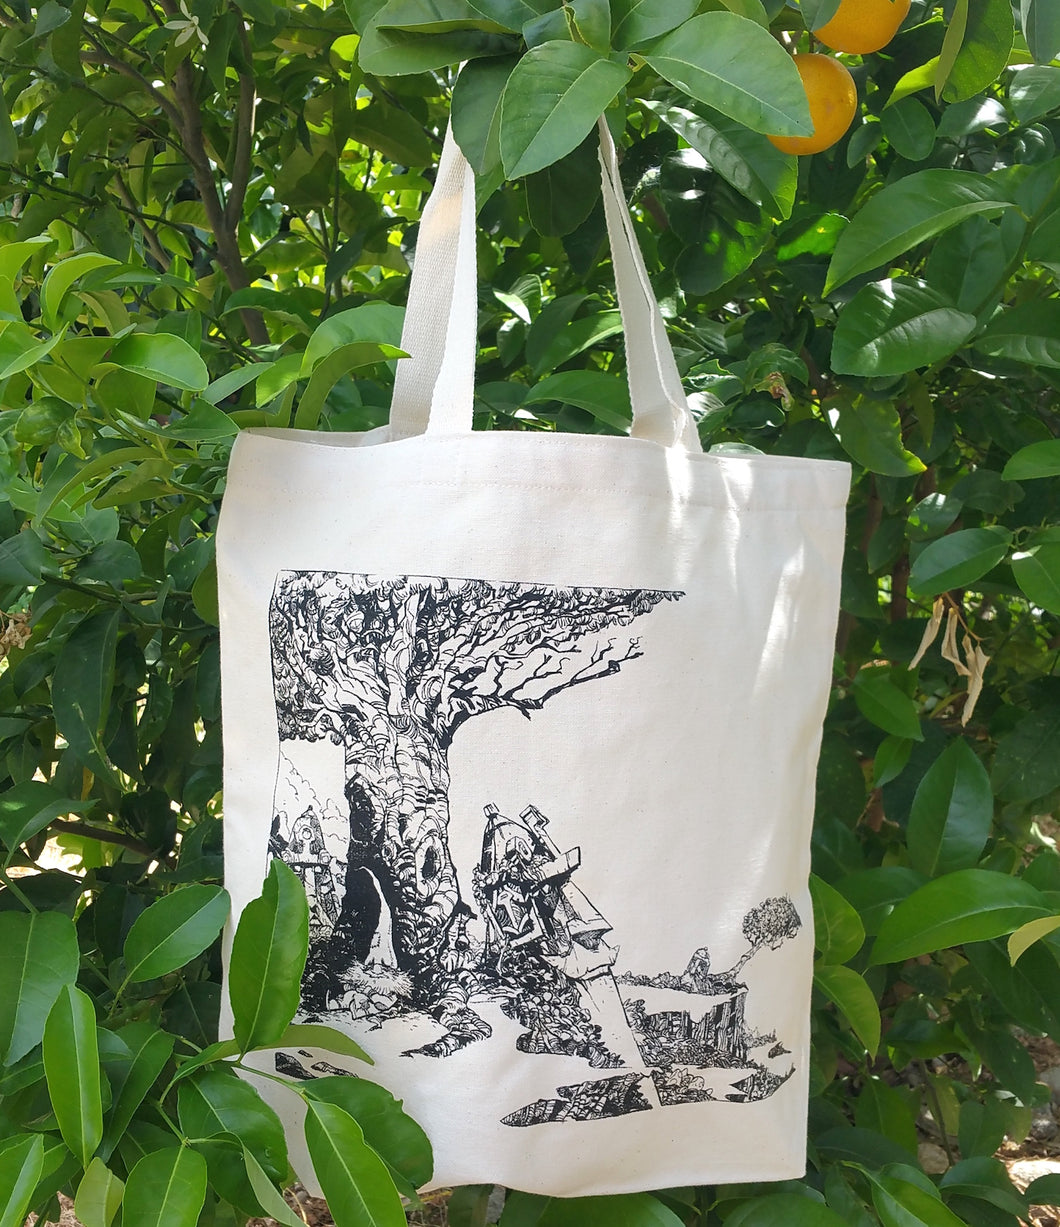 Timeless Forest Gnome Reusable Tote Bag - Organic Cotton